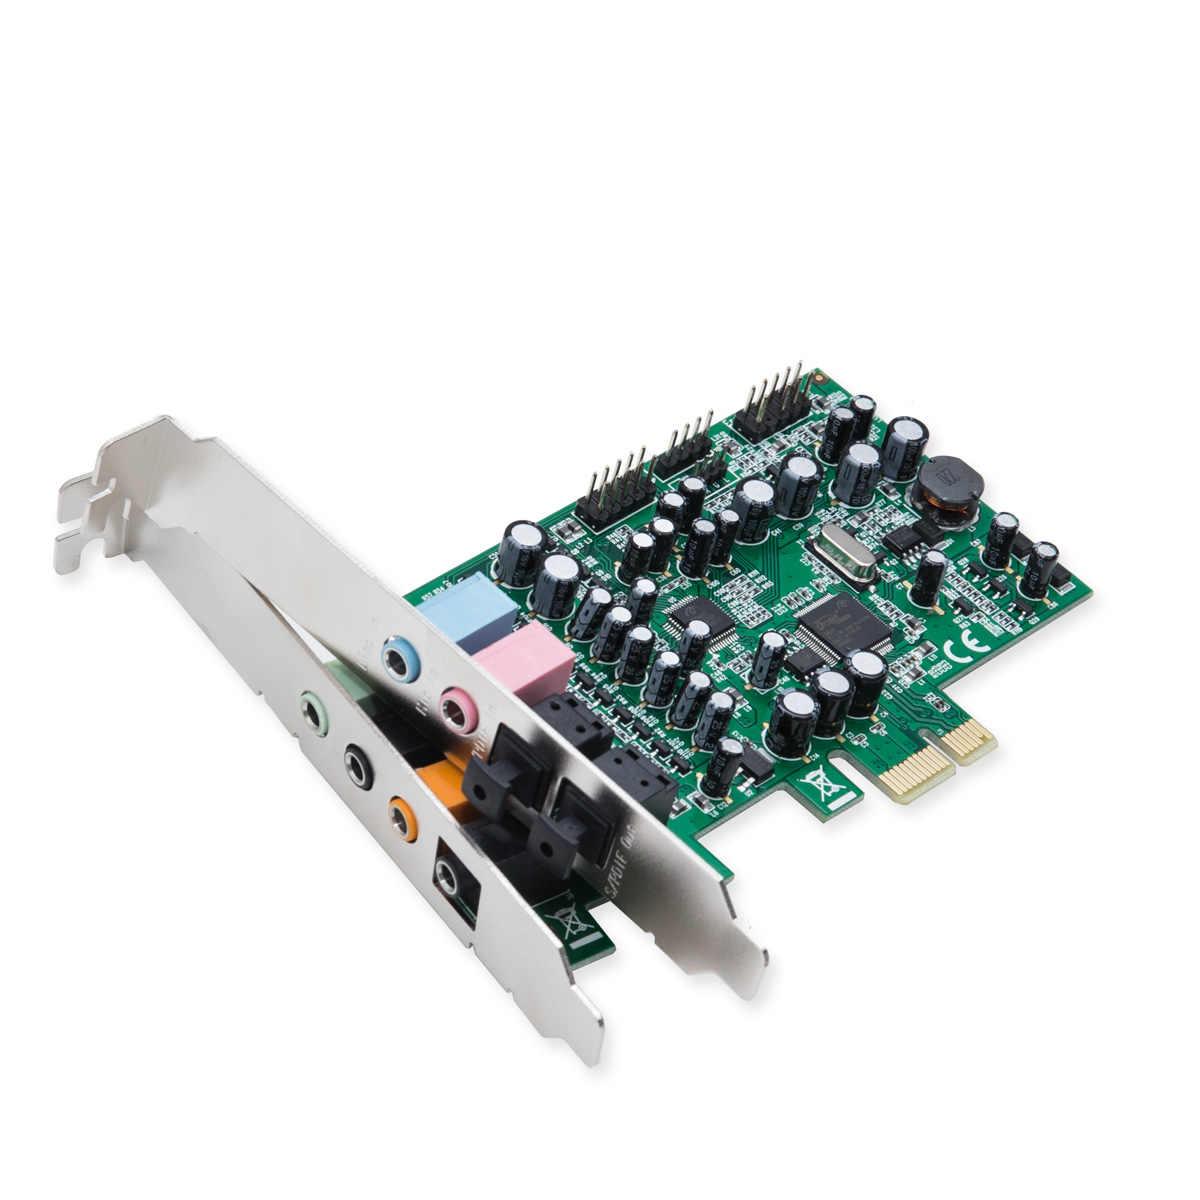 7.1 Surround Sound PCI-e Sound Card, S/PDIF In and Out